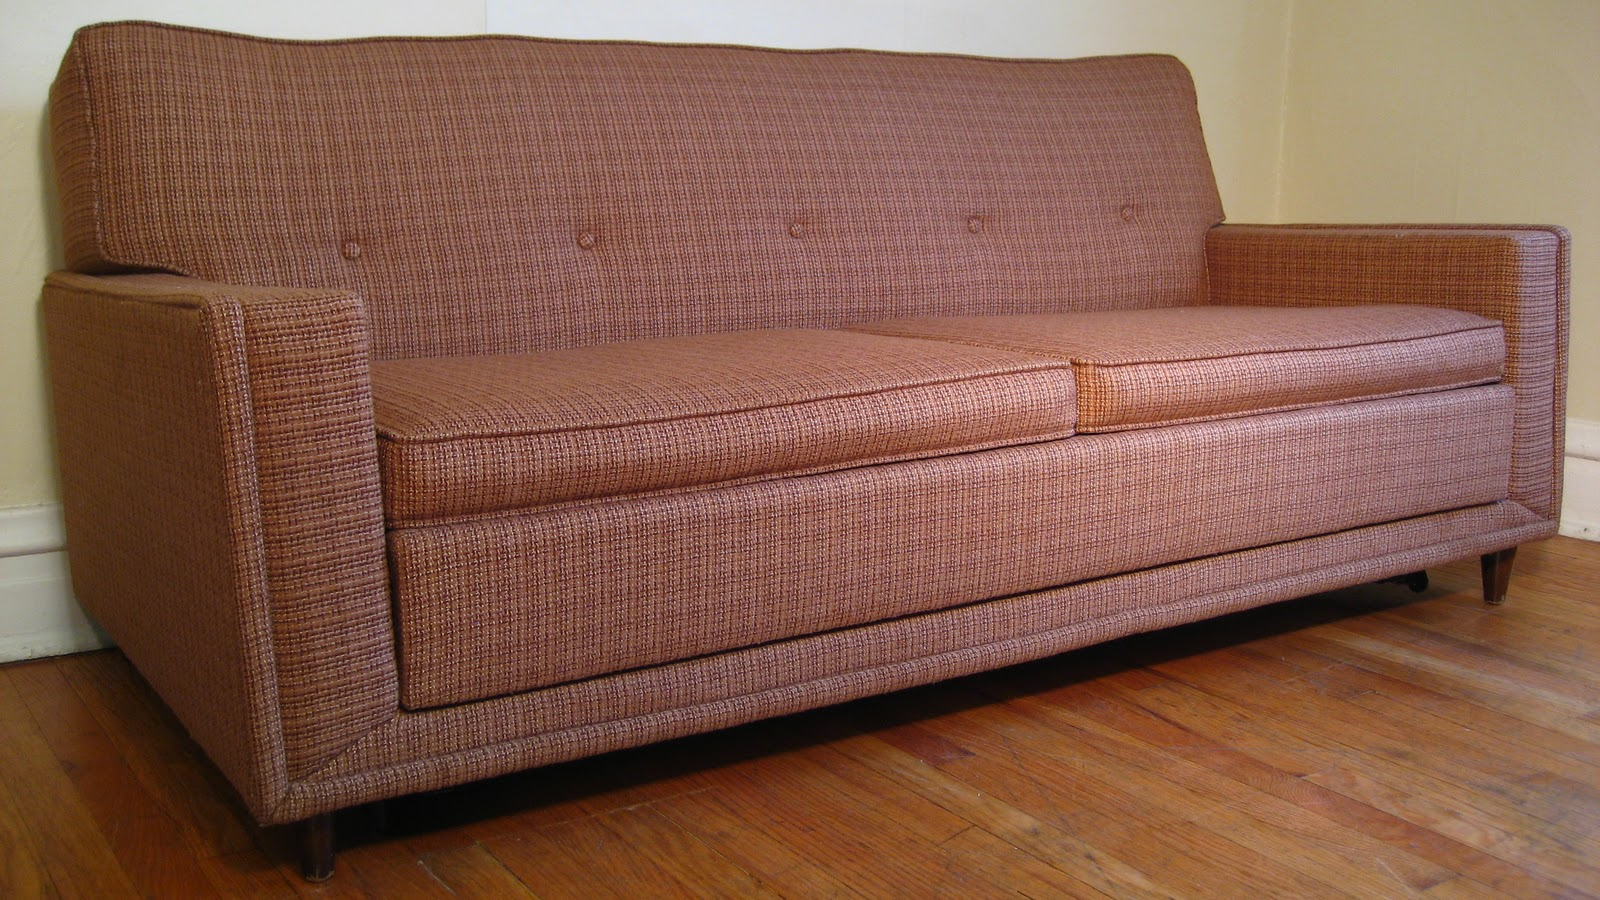 High Quality Best Vintage Sleeper Sofa 53 For Office Sofa Ideas With Vintage Sleeper Sofa